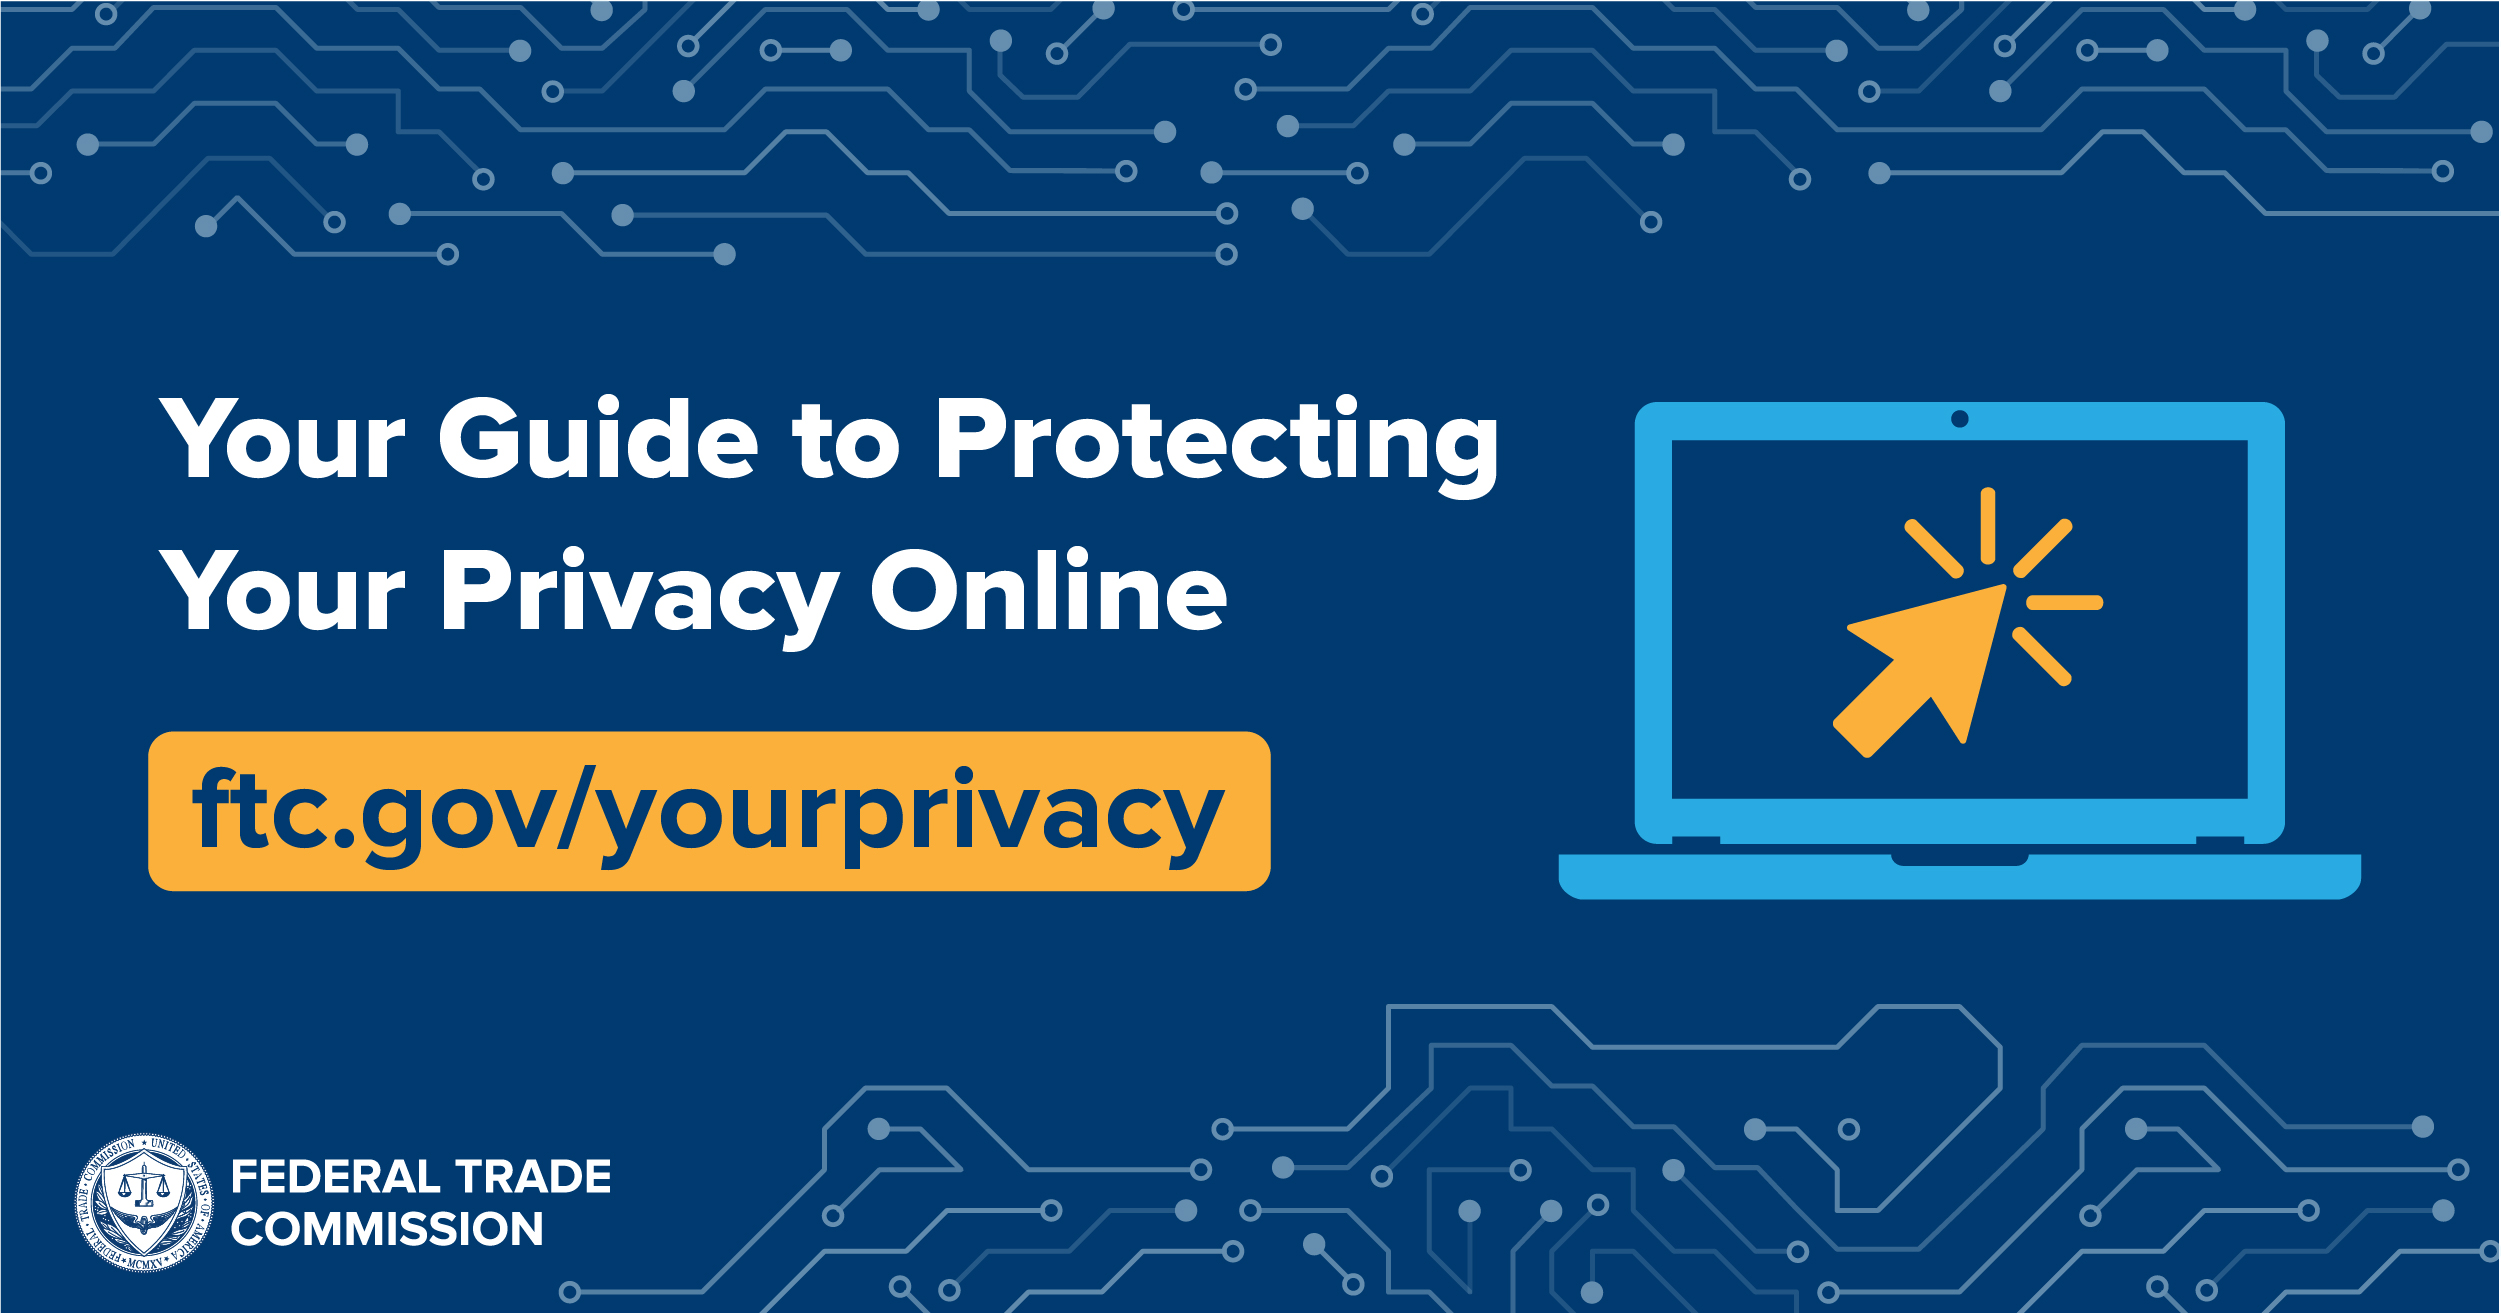 Your Guide to Protecting Your Privacy Online ftc.gov/yourprivacy